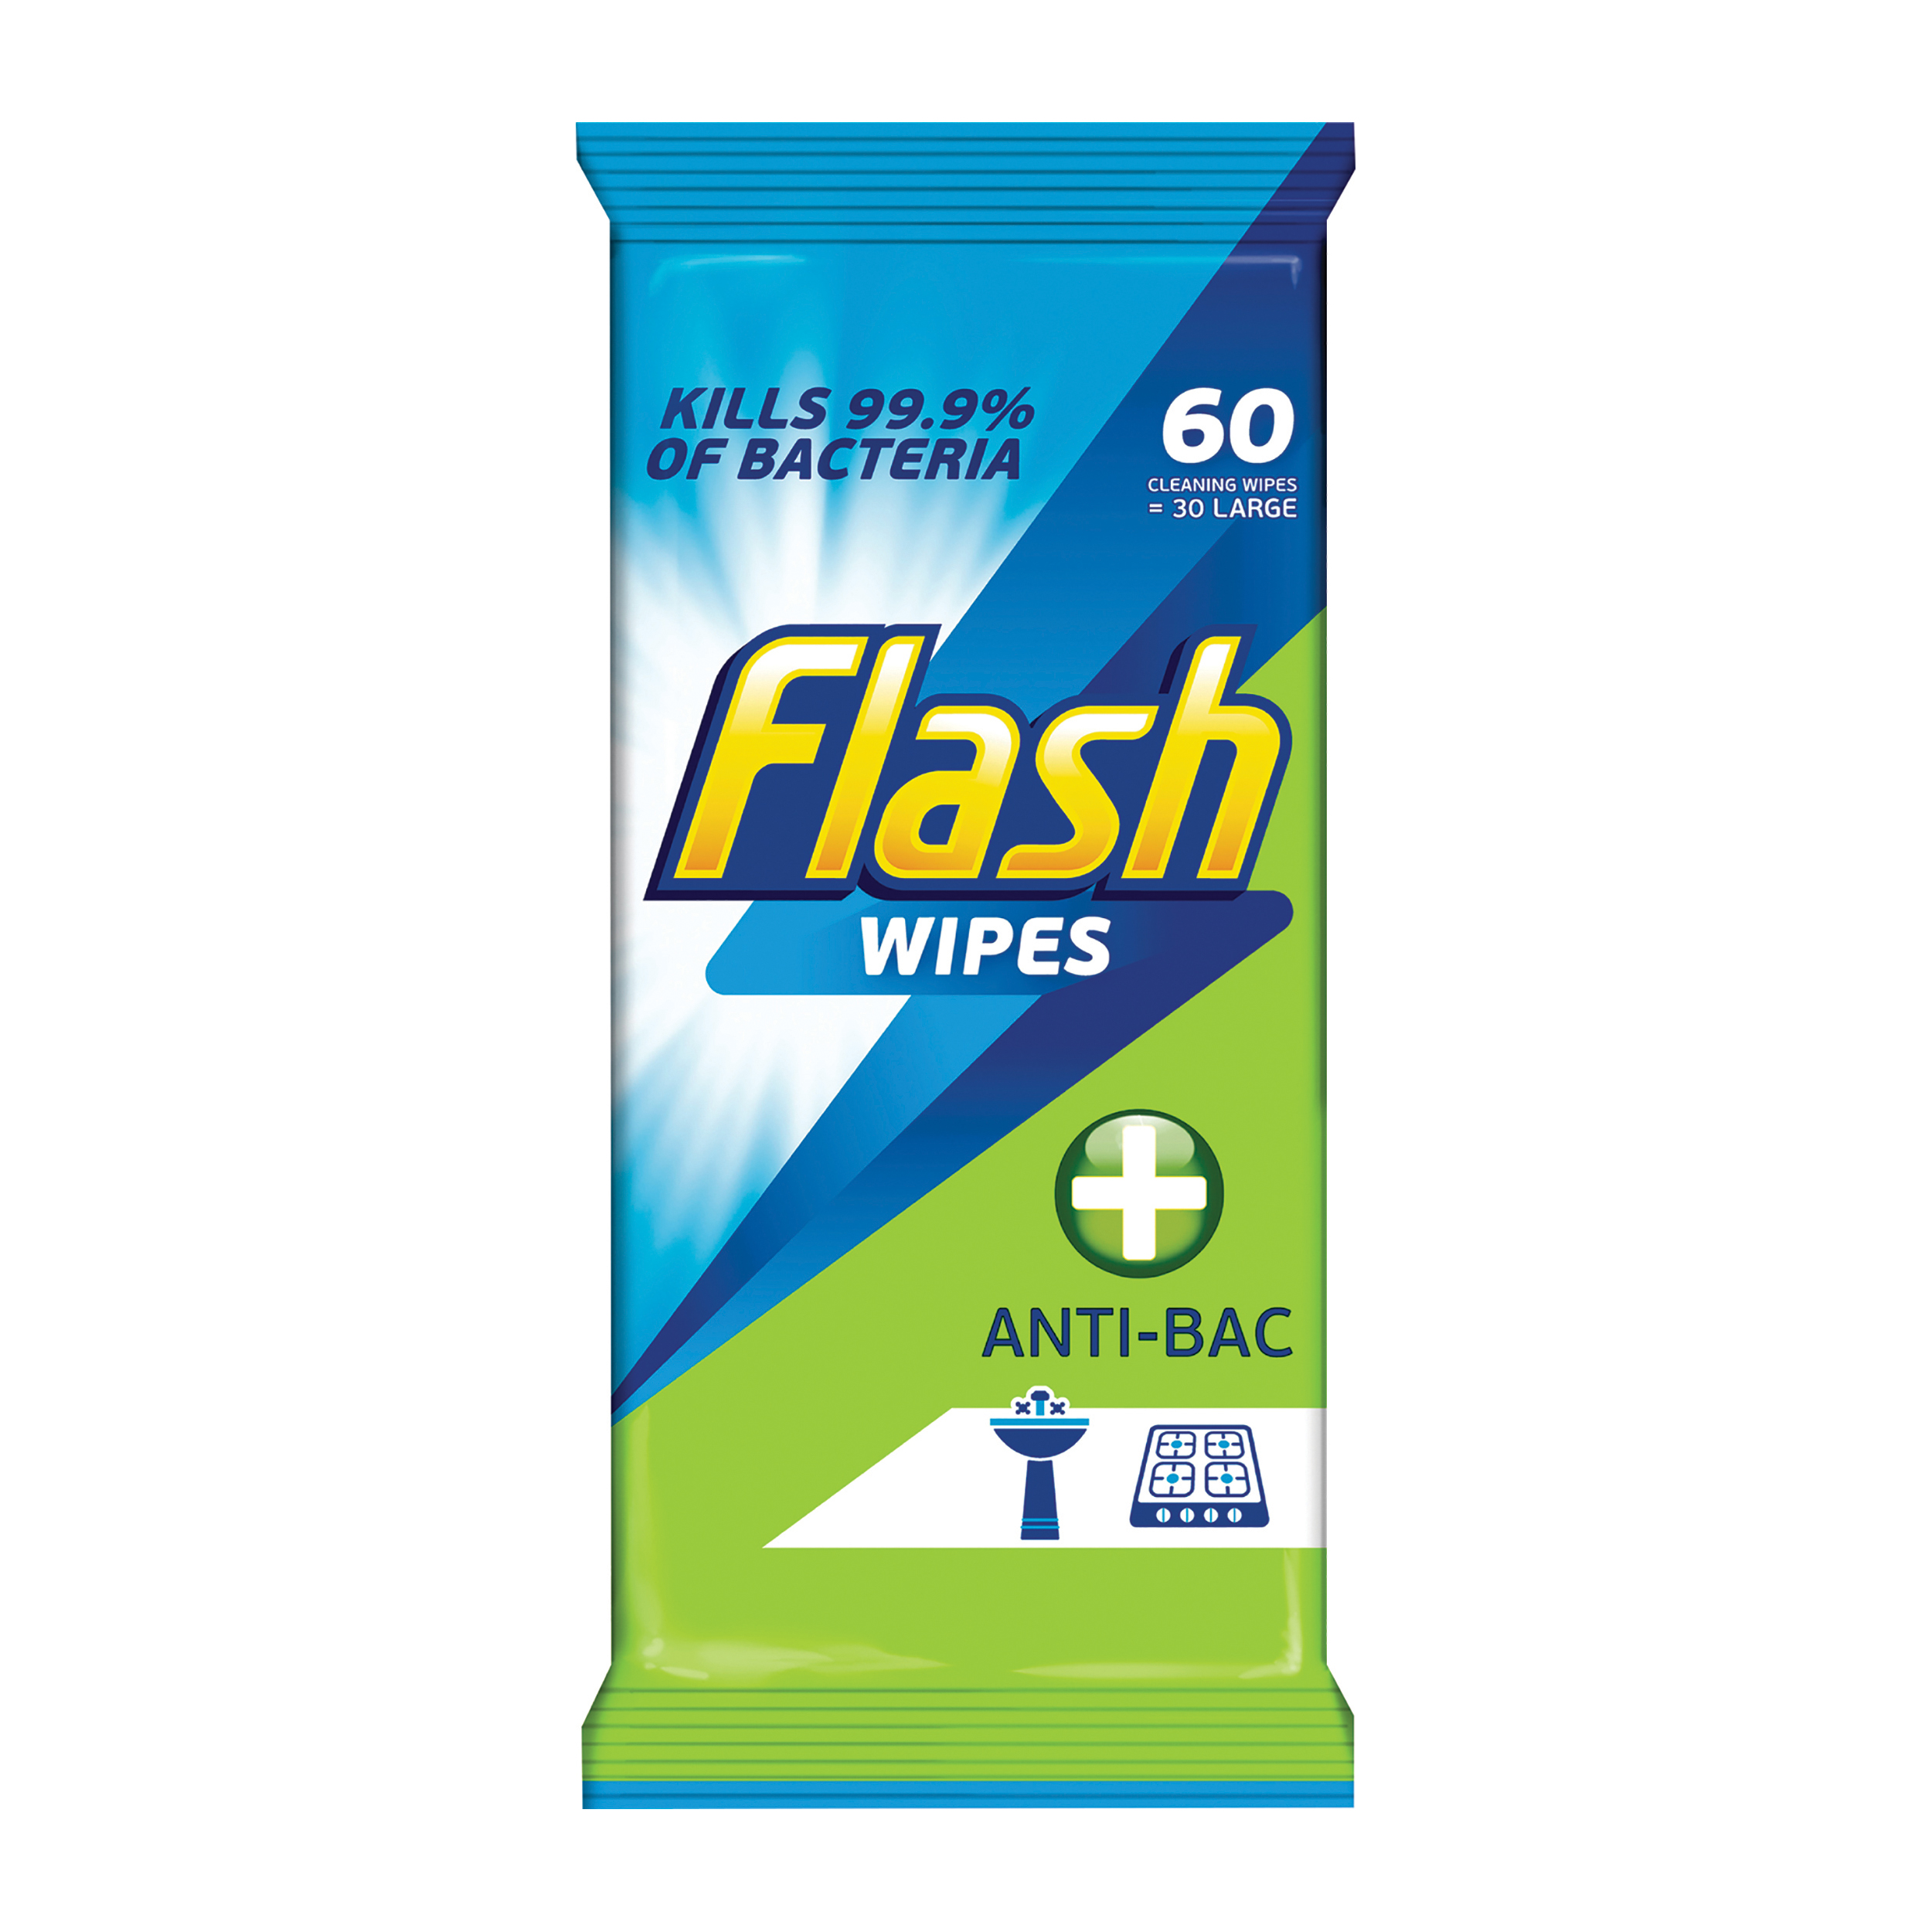 Disinfectant Wipes Flash Cleaning Wipes Unscented Antibacterial Ref 0706065 60 Wipes